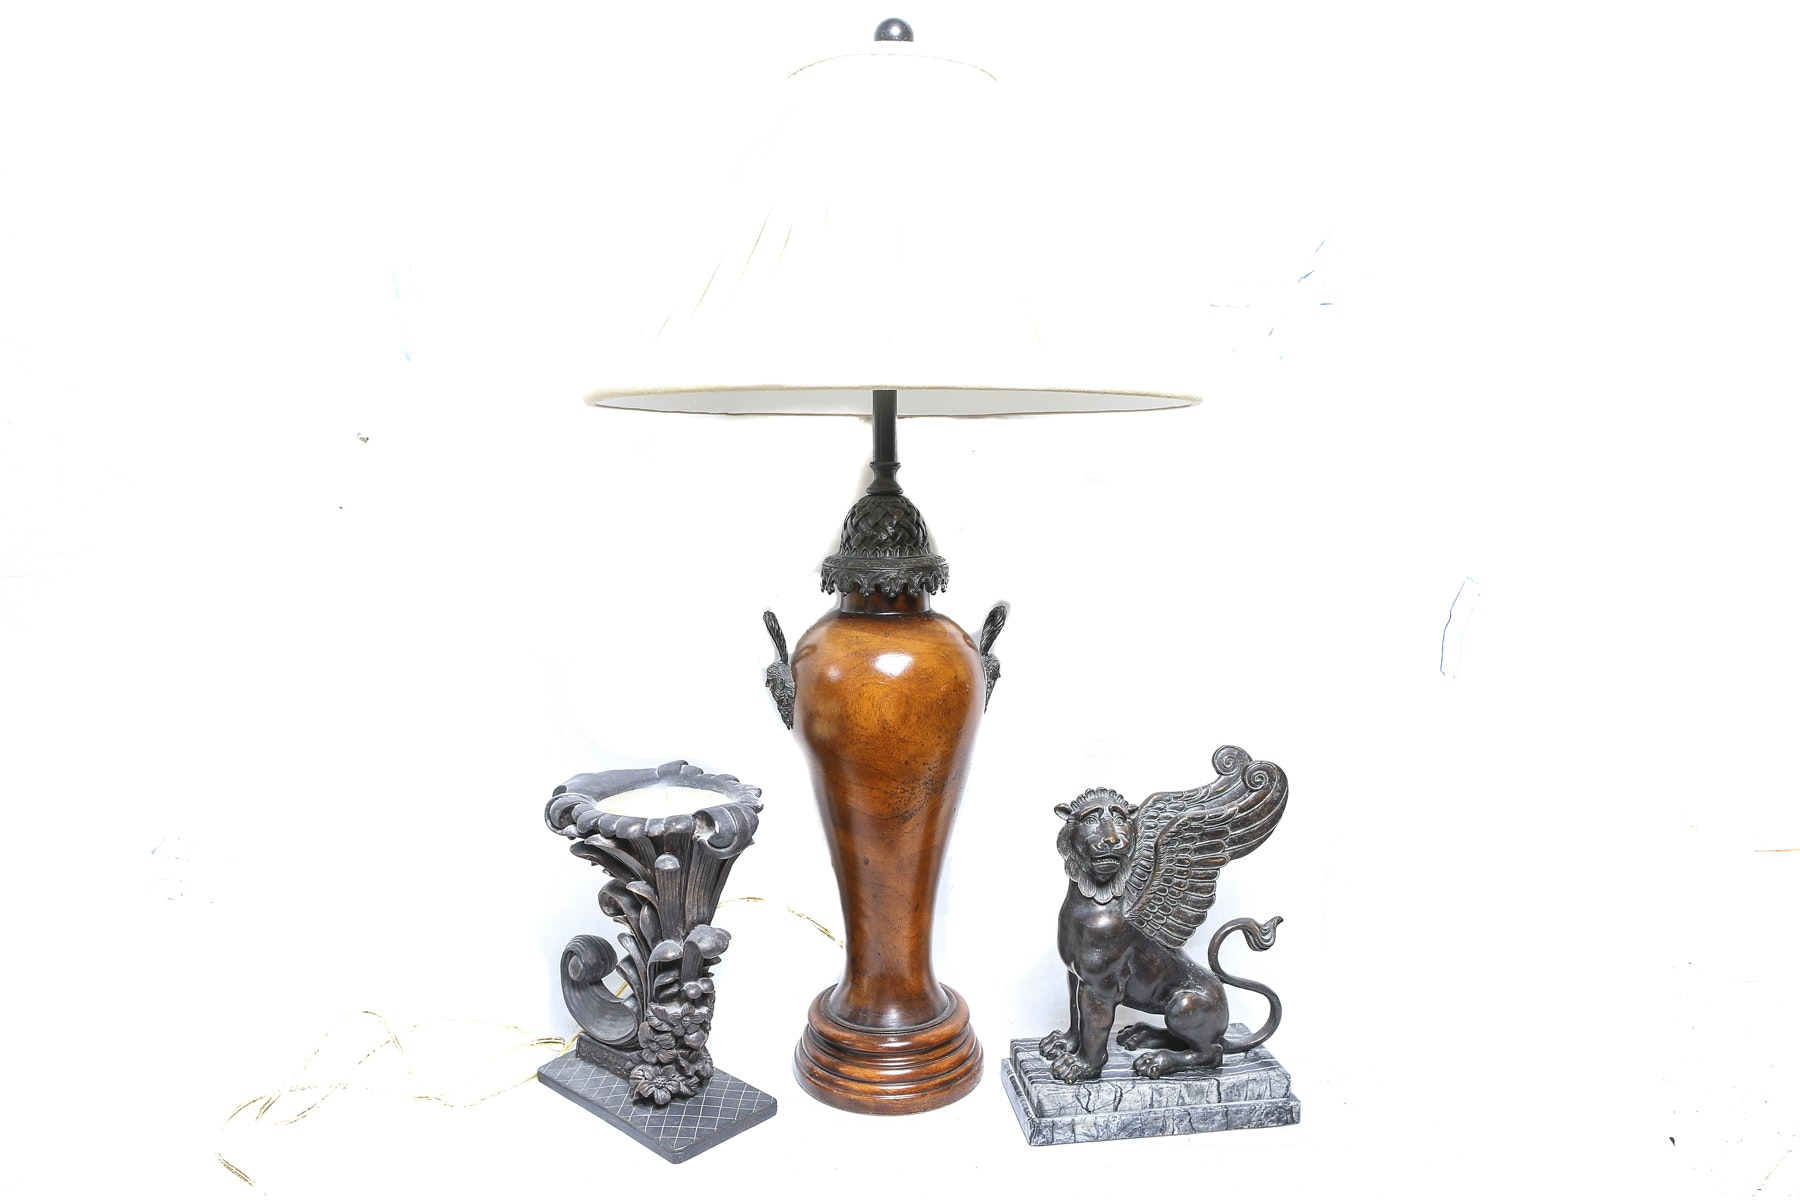 Carved Wooden Lamp and Decor